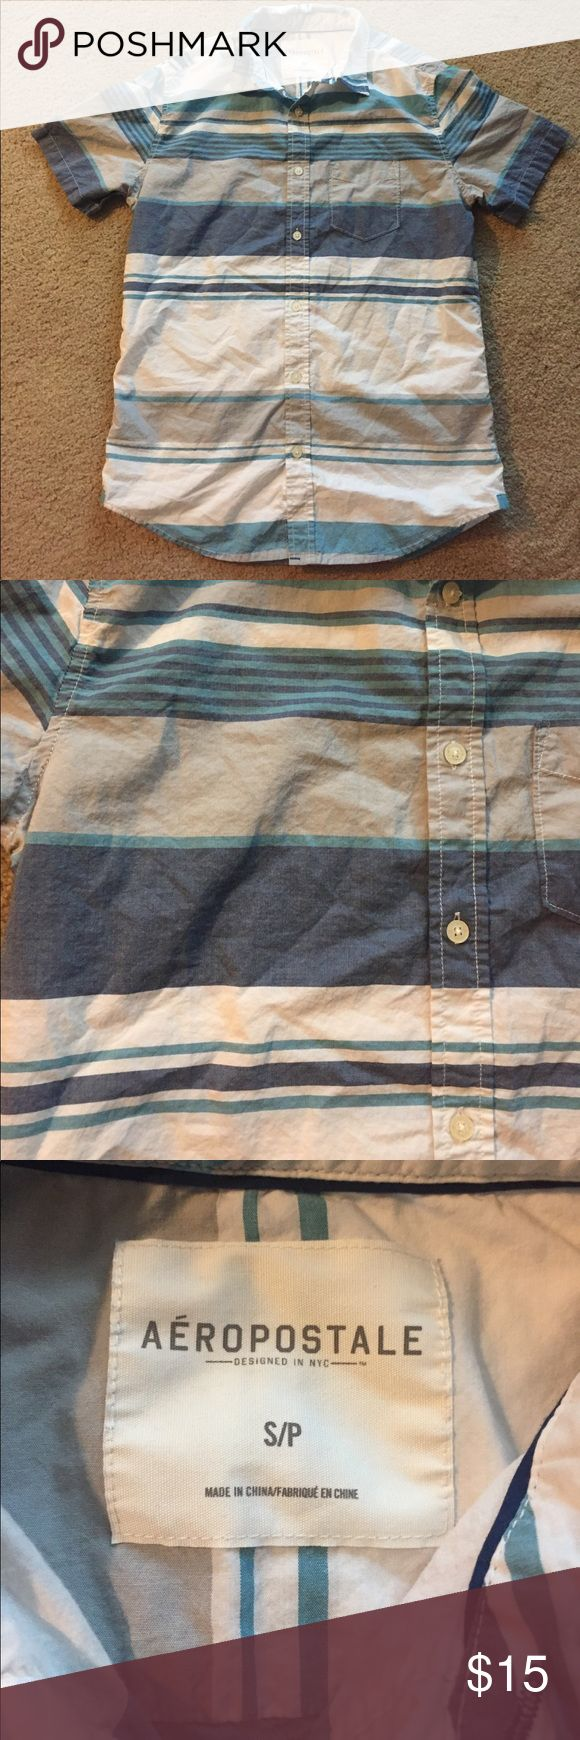 Aeropostale men's' small plaid button up shirt Great condition button up men's plaid shirt... size small by Aeropostale... no stains, rips or holes... Aeropostale Shirts Casual Button Down Shirts